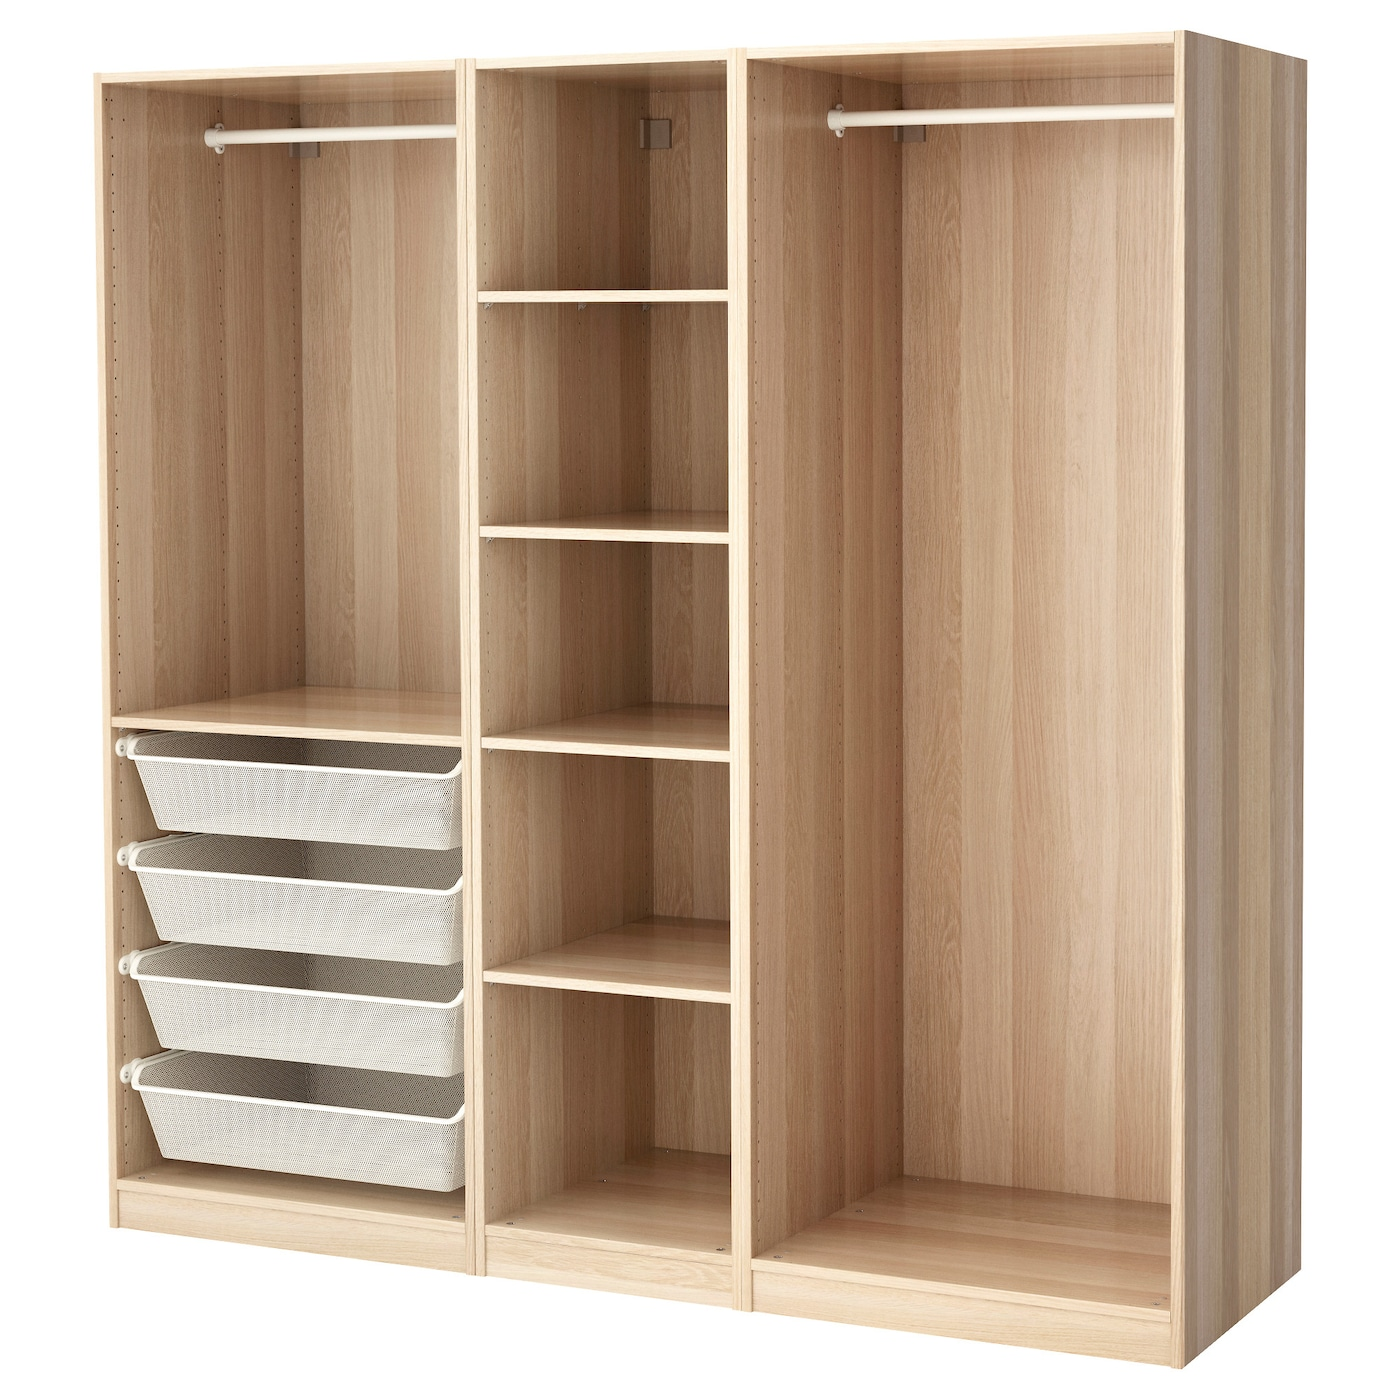 pax wardrobe white stained oak effect 200 x 58 x 201 cm ikea. Black Bedroom Furniture Sets. Home Design Ideas